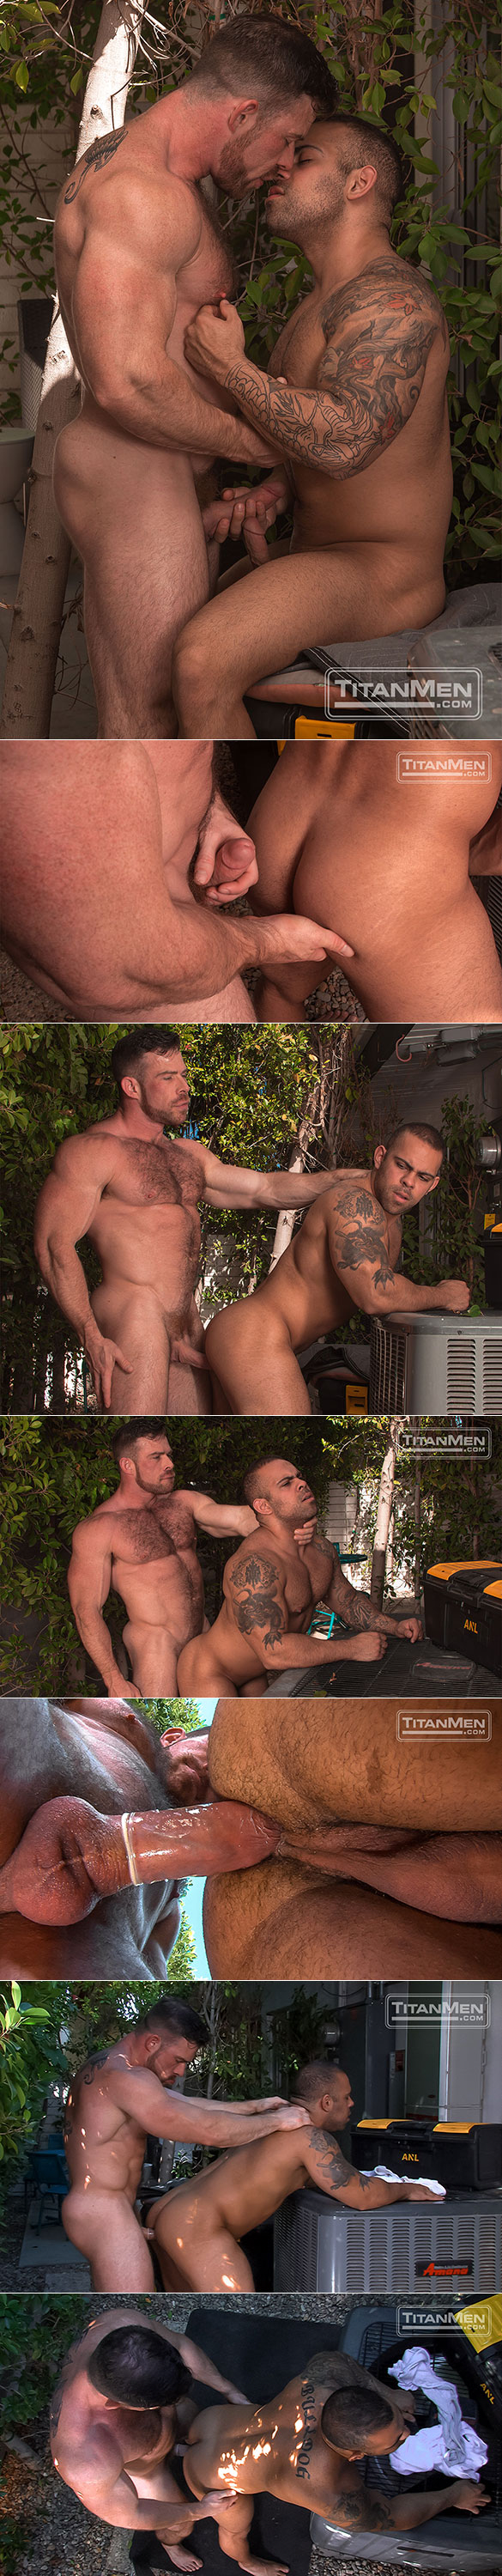 "TitanMen: Liam Knox fucks Lorenzo Flexx in ""Big Brother"""